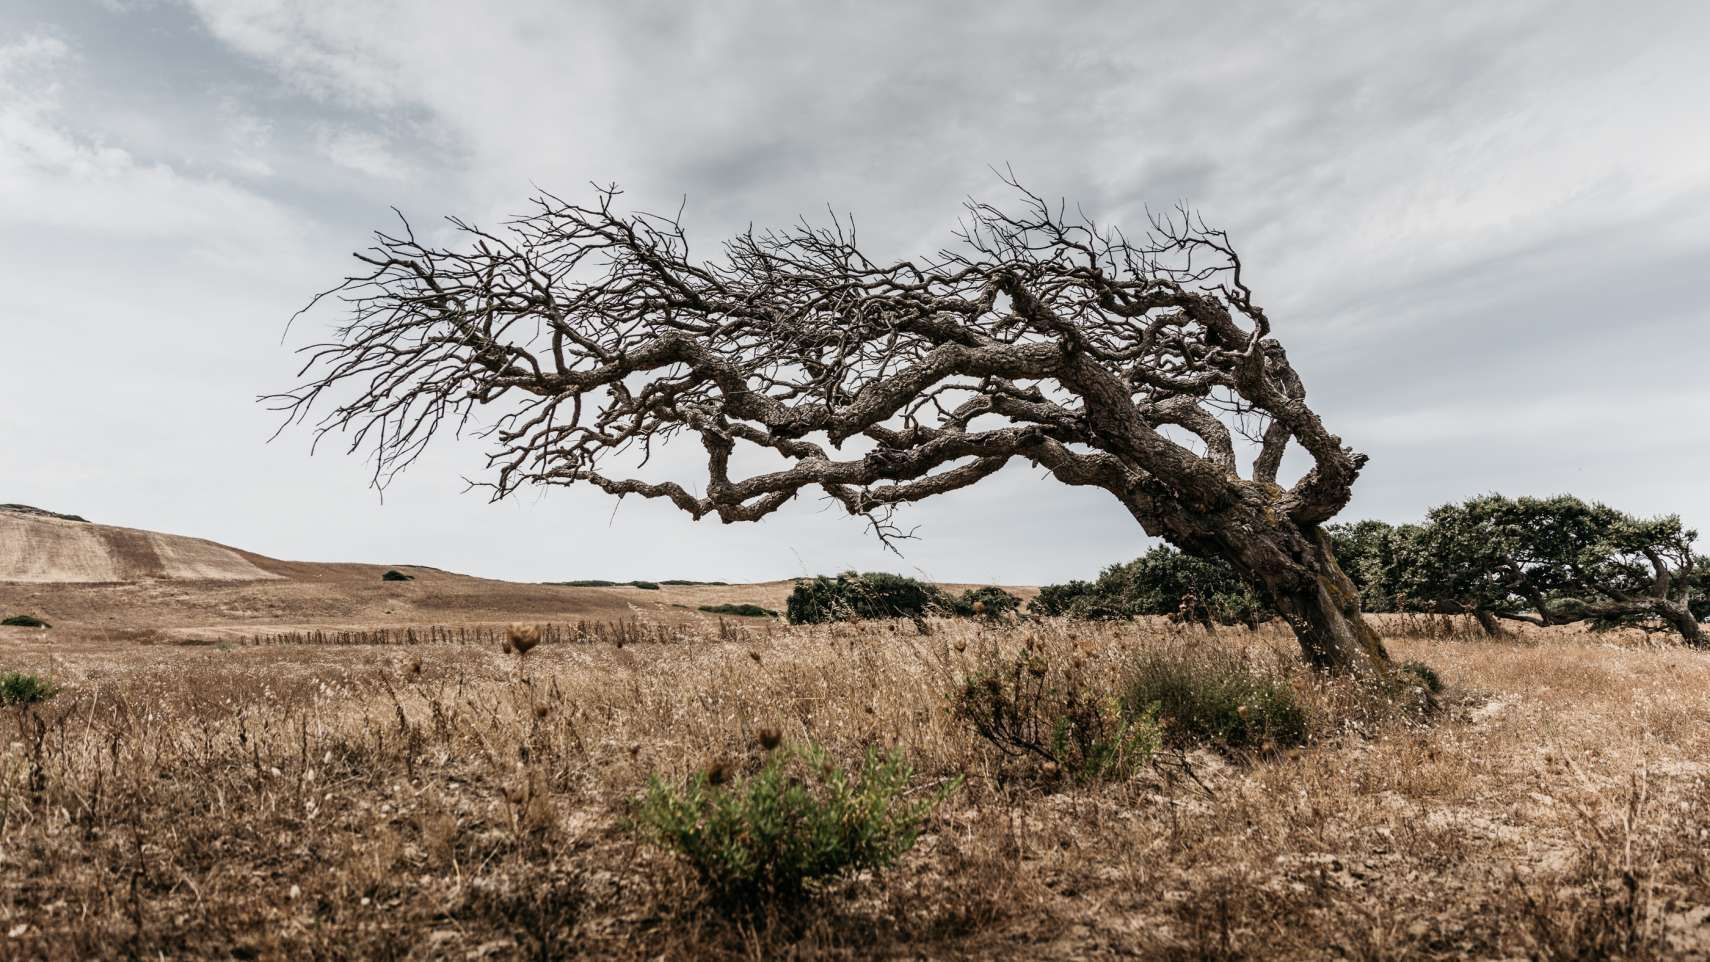 Mistral shaped trees like this one are found all over Sardinia, just like the remnants of a long-gone civilisation